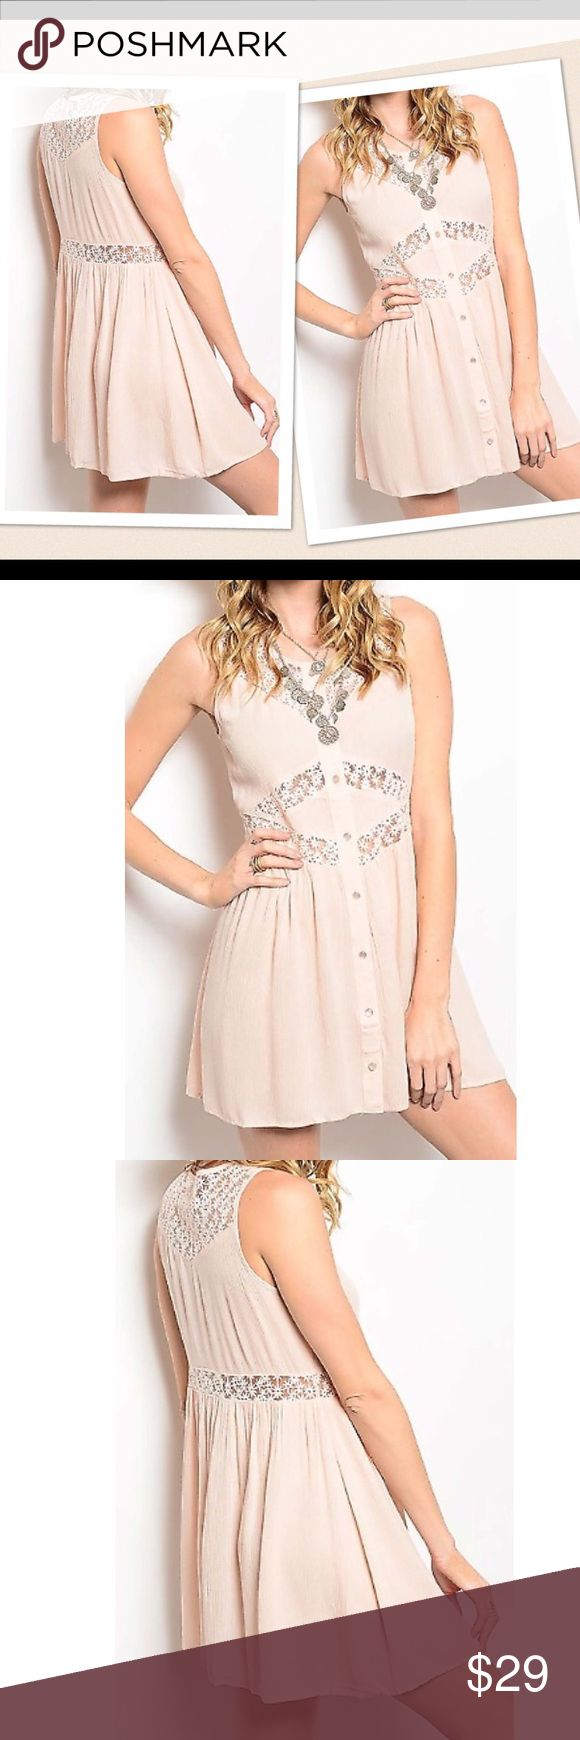 Coming Soon! Reserve Now. Baby Doll Dress Button down lace trim baby doll dress. Fabric content: 100% Rayon. Contrast: 100 Nylon. Color Blush Dresses Mini